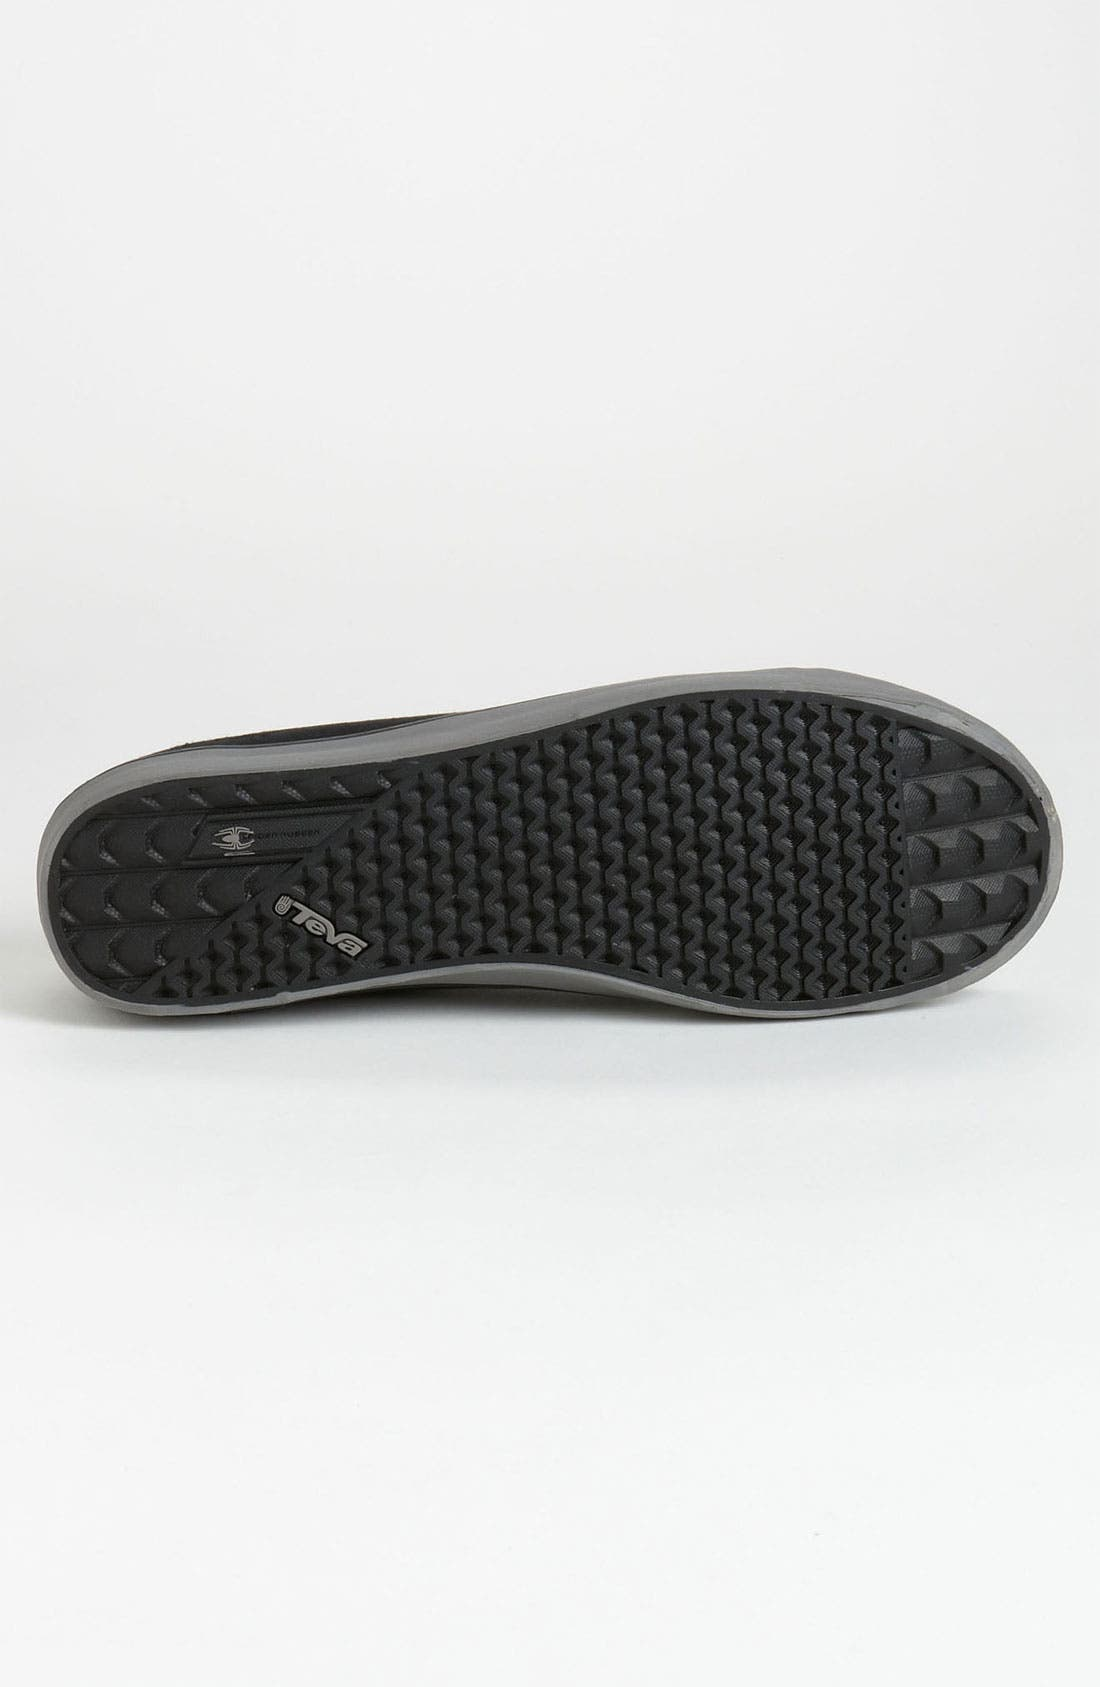 TEVA,                             'Joyride' Sneaker,                             Alternate thumbnail 2, color,                             001